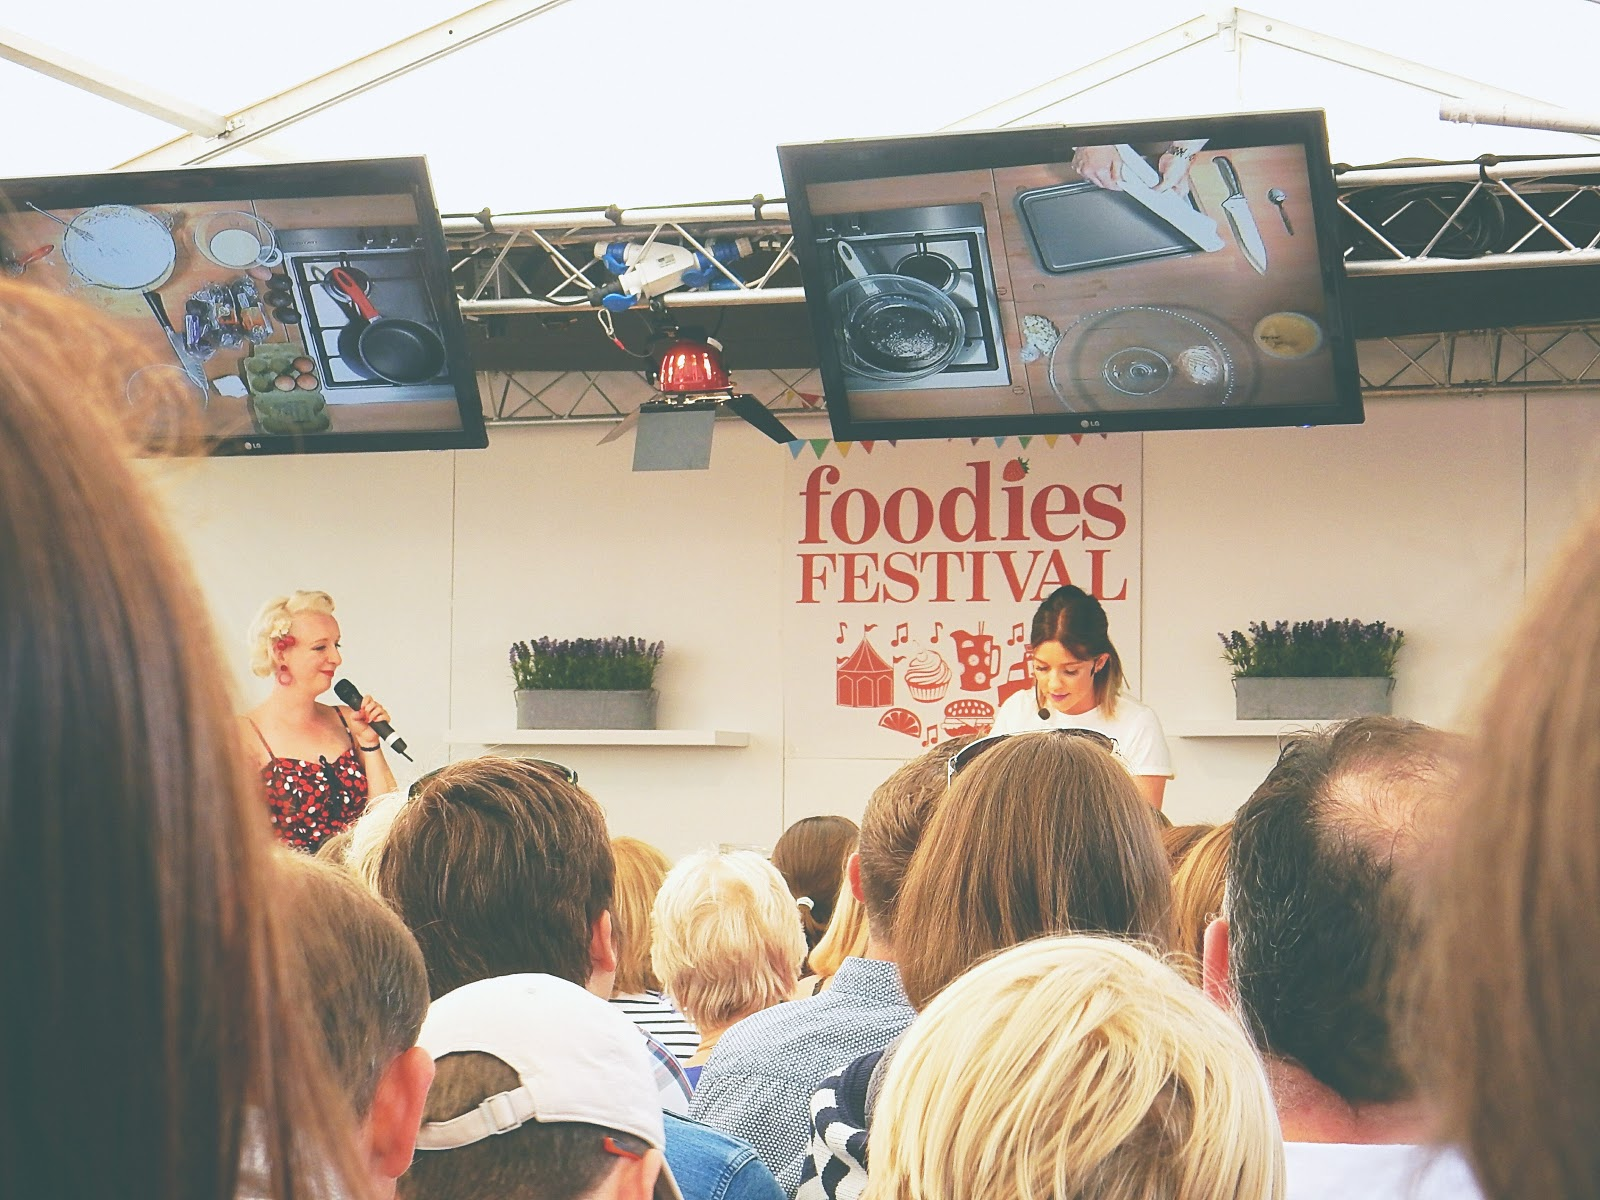 foodies festival south park oxford